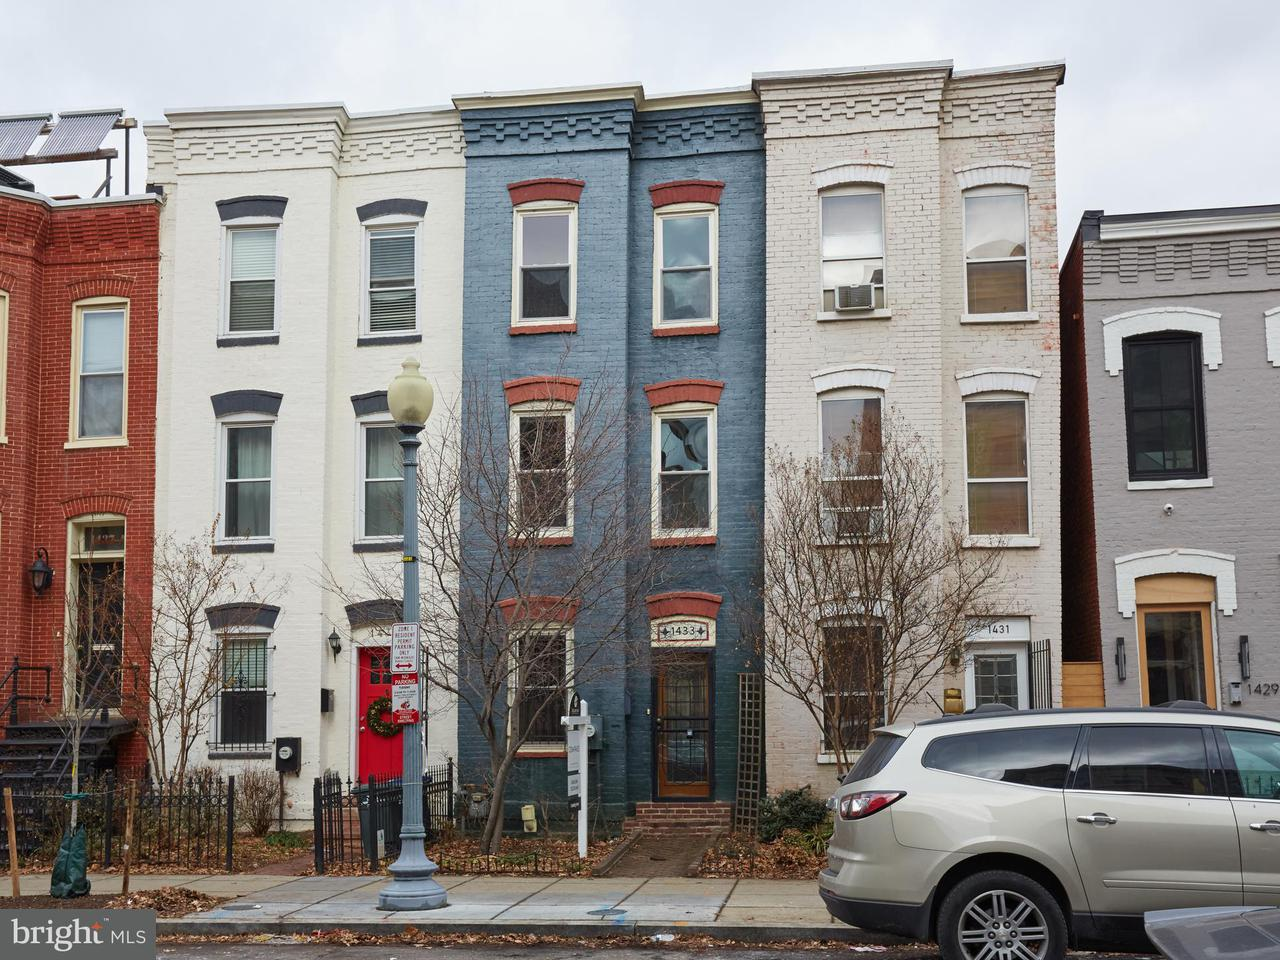 Townhouse for Sale at 1433 W ST NW 1433 W ST NW Washington, District Of Columbia 20009 United States